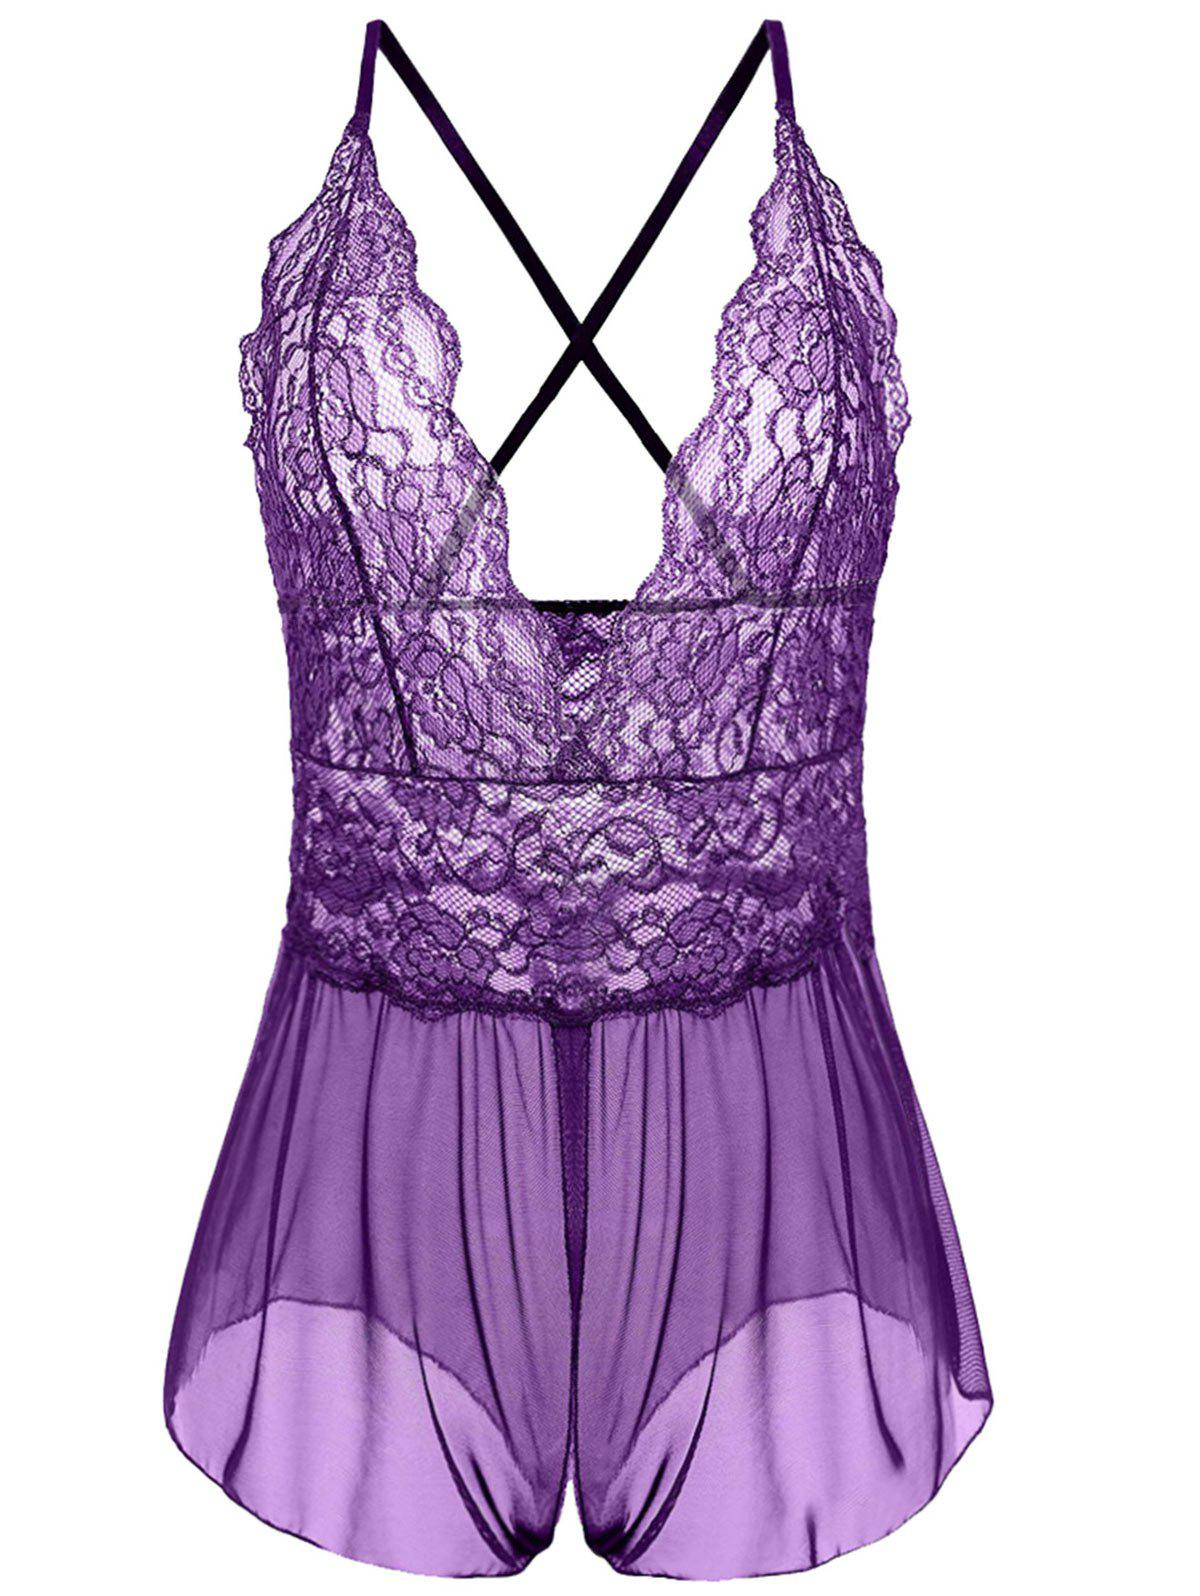 Plus Size Plunging Neck See Through BabydollWOMEN<br><br>Size: 3XL; Color: PURPLE; Material: Polyester; Pattern Type: Solid; Embellishment: None; Weight: 0.1300kg; Package Contents: 1 x Babydoll;